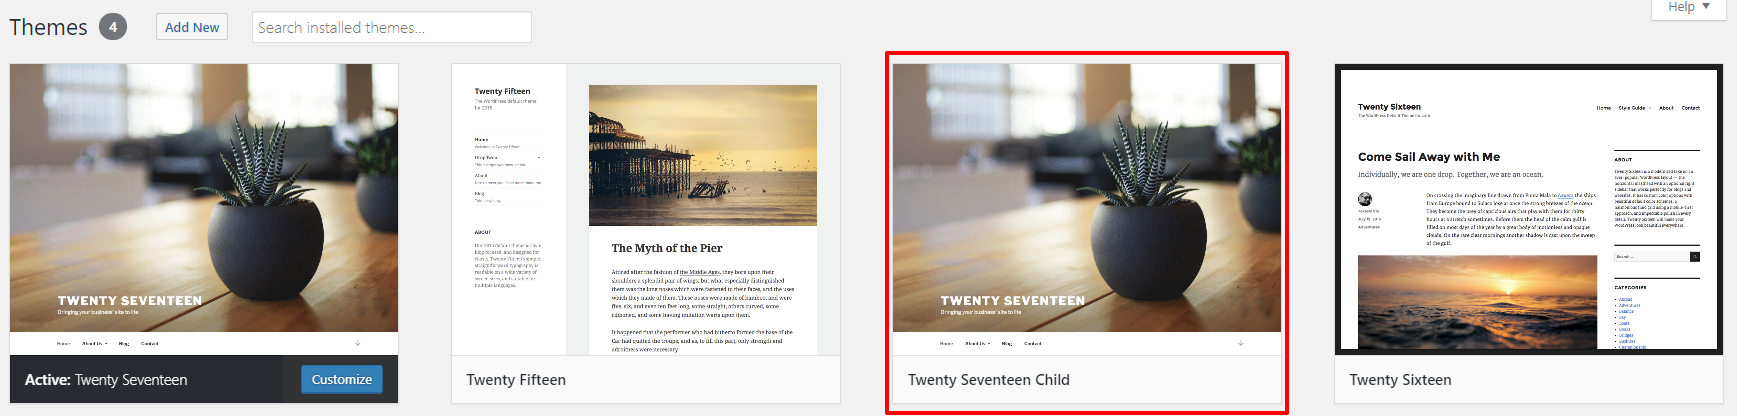 Twenty Seventeen child theme in WordPress | HollyPryce.com